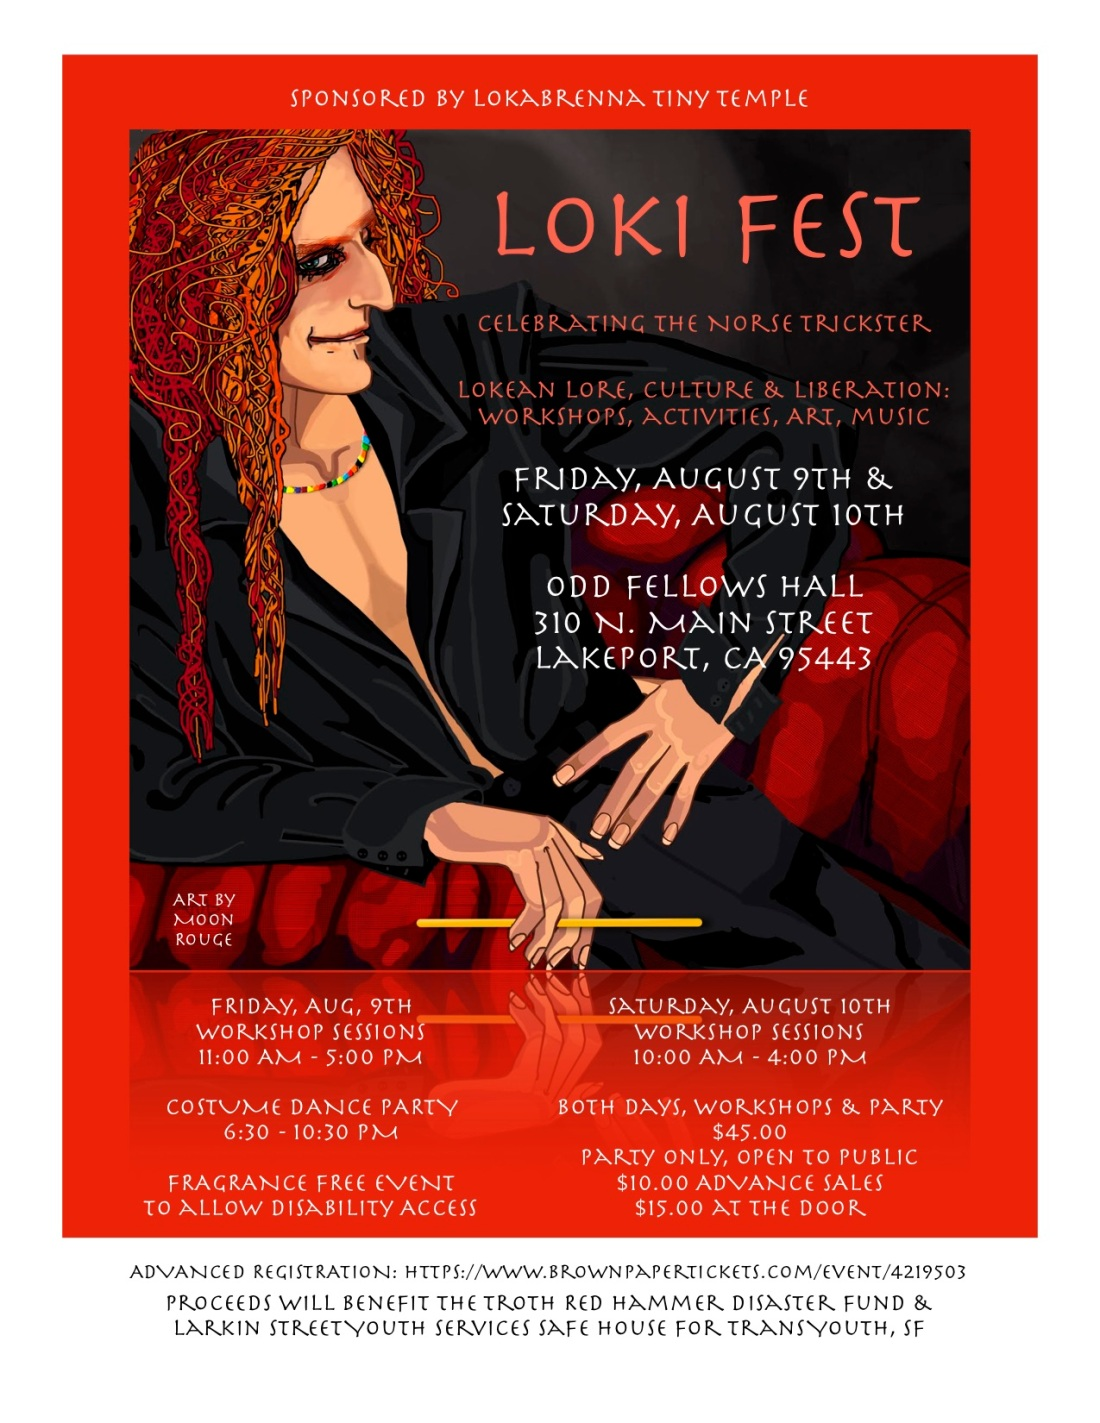 NEW & BEST LokiFest Flyer 4:22